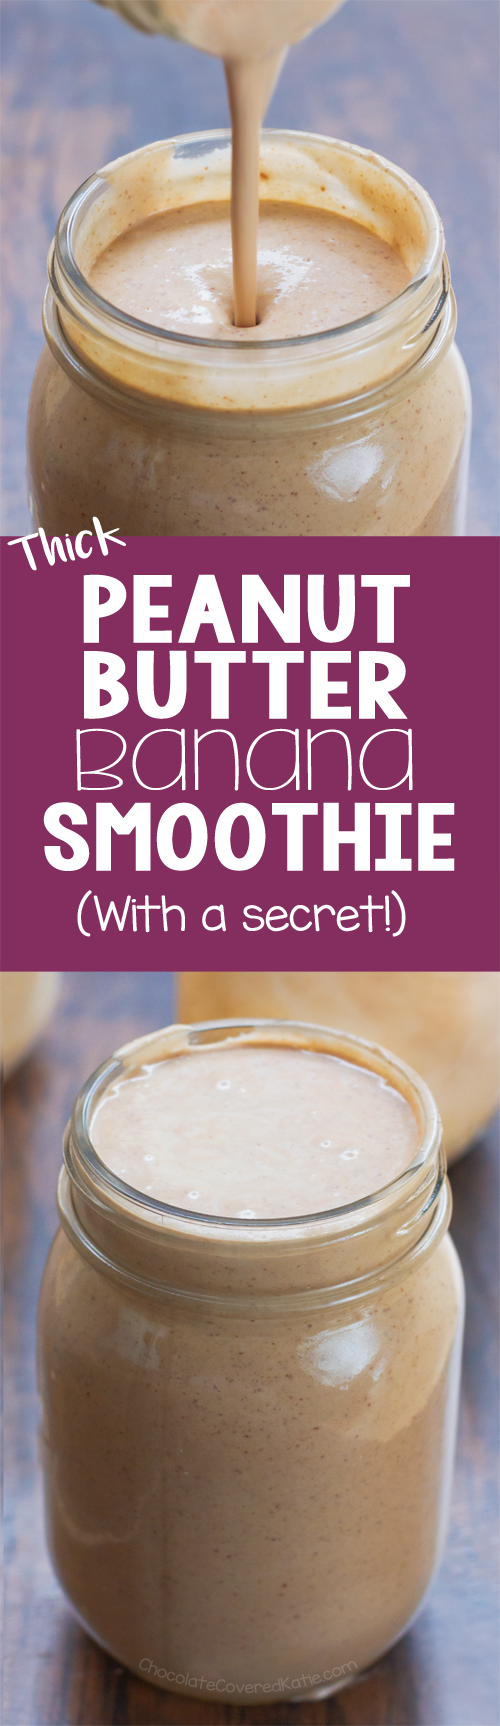 This ultra thick and creamy peanut butter banana smoothie recipe tastes like a milkshake but is actually good for you! @choccoveredkt